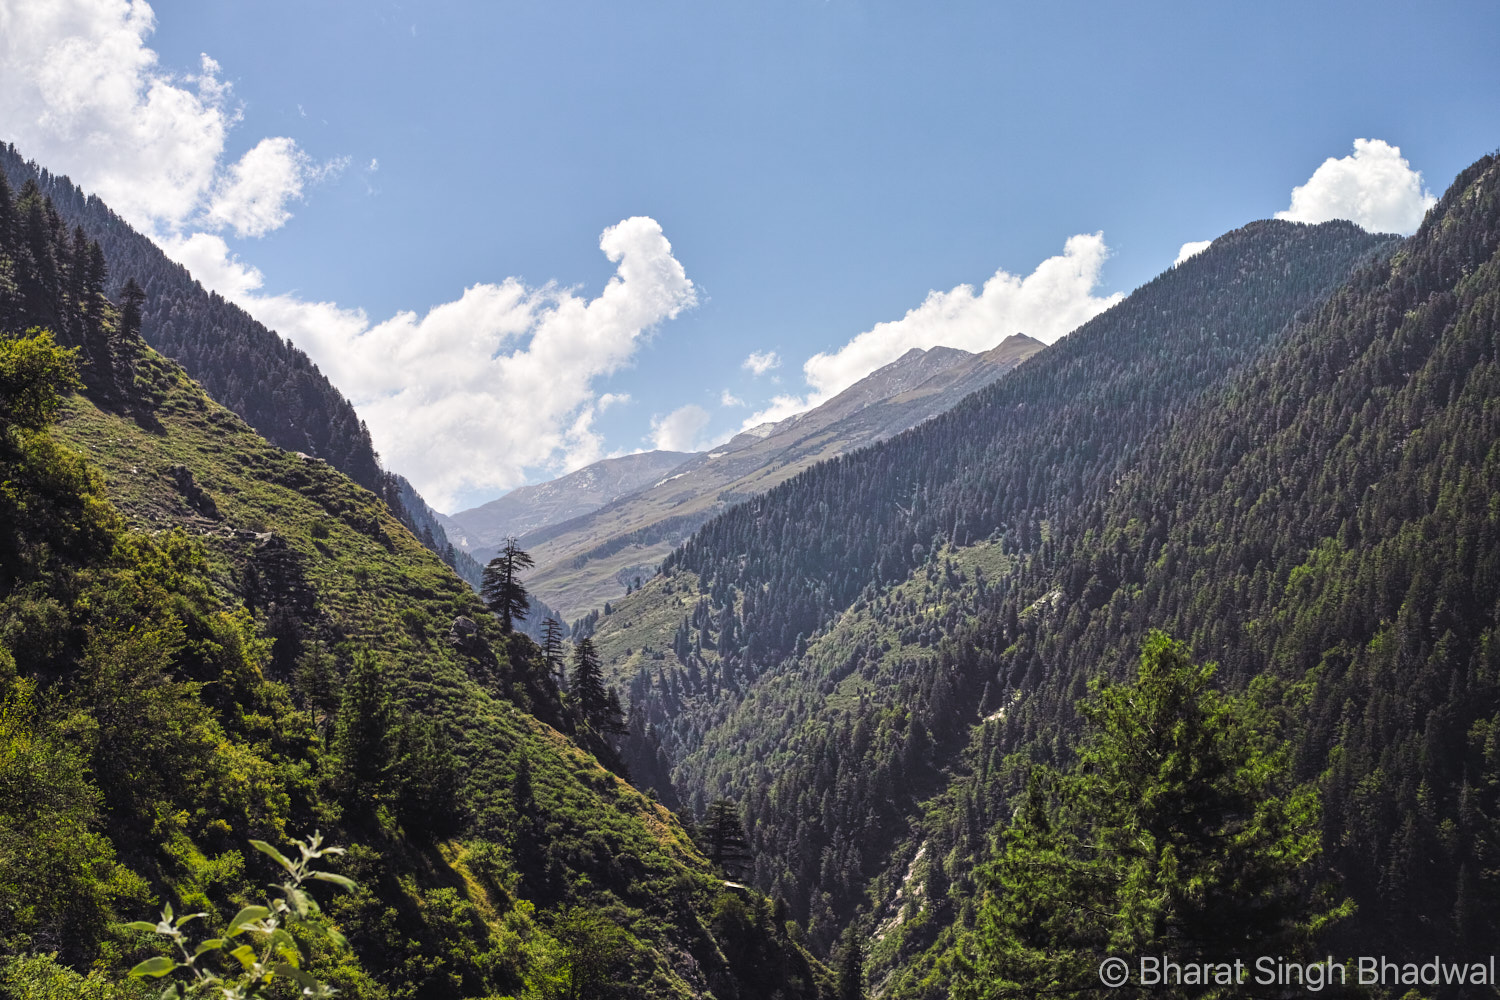 Looking back wistfully at Jalsu Pass.